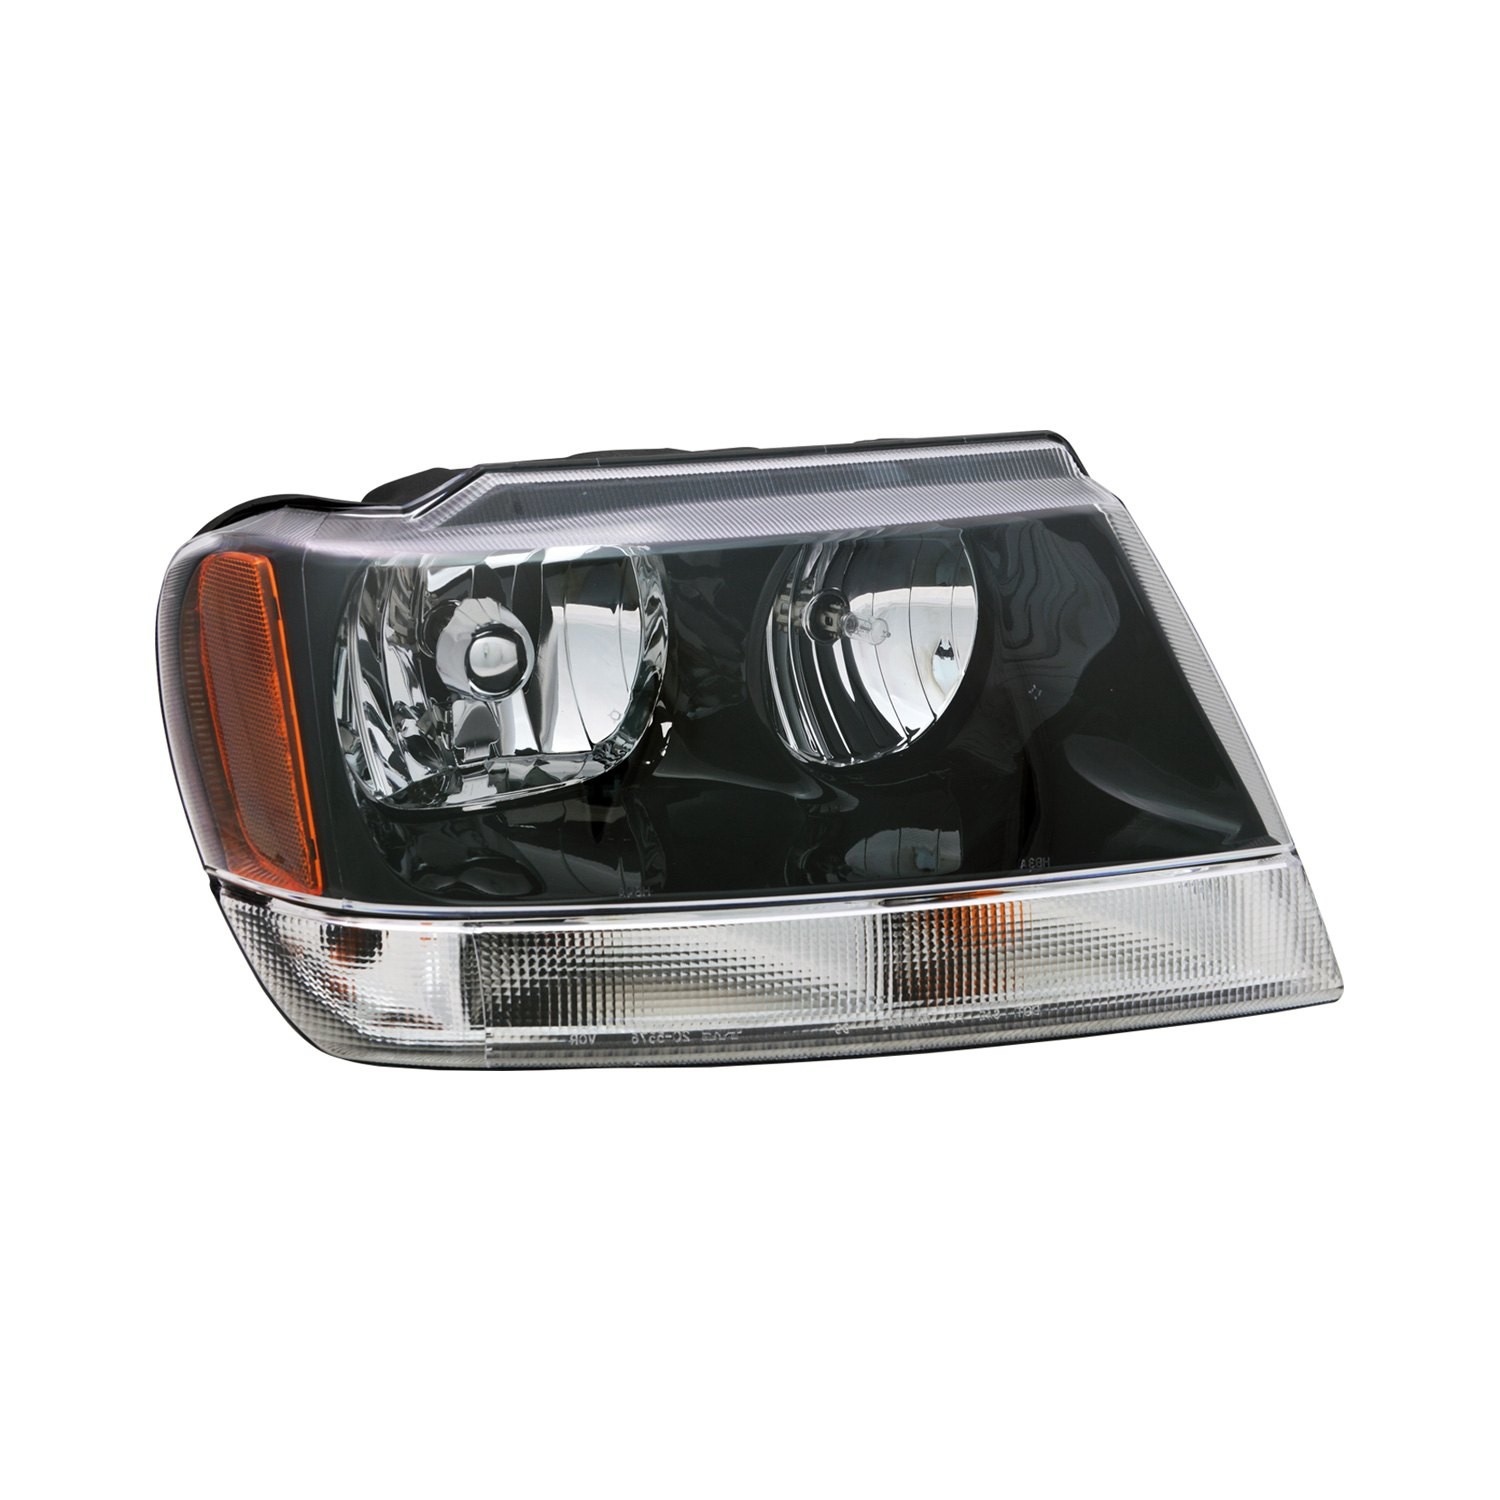 For Jeep Grand Cherokee 02-04 Replace Passenger Side